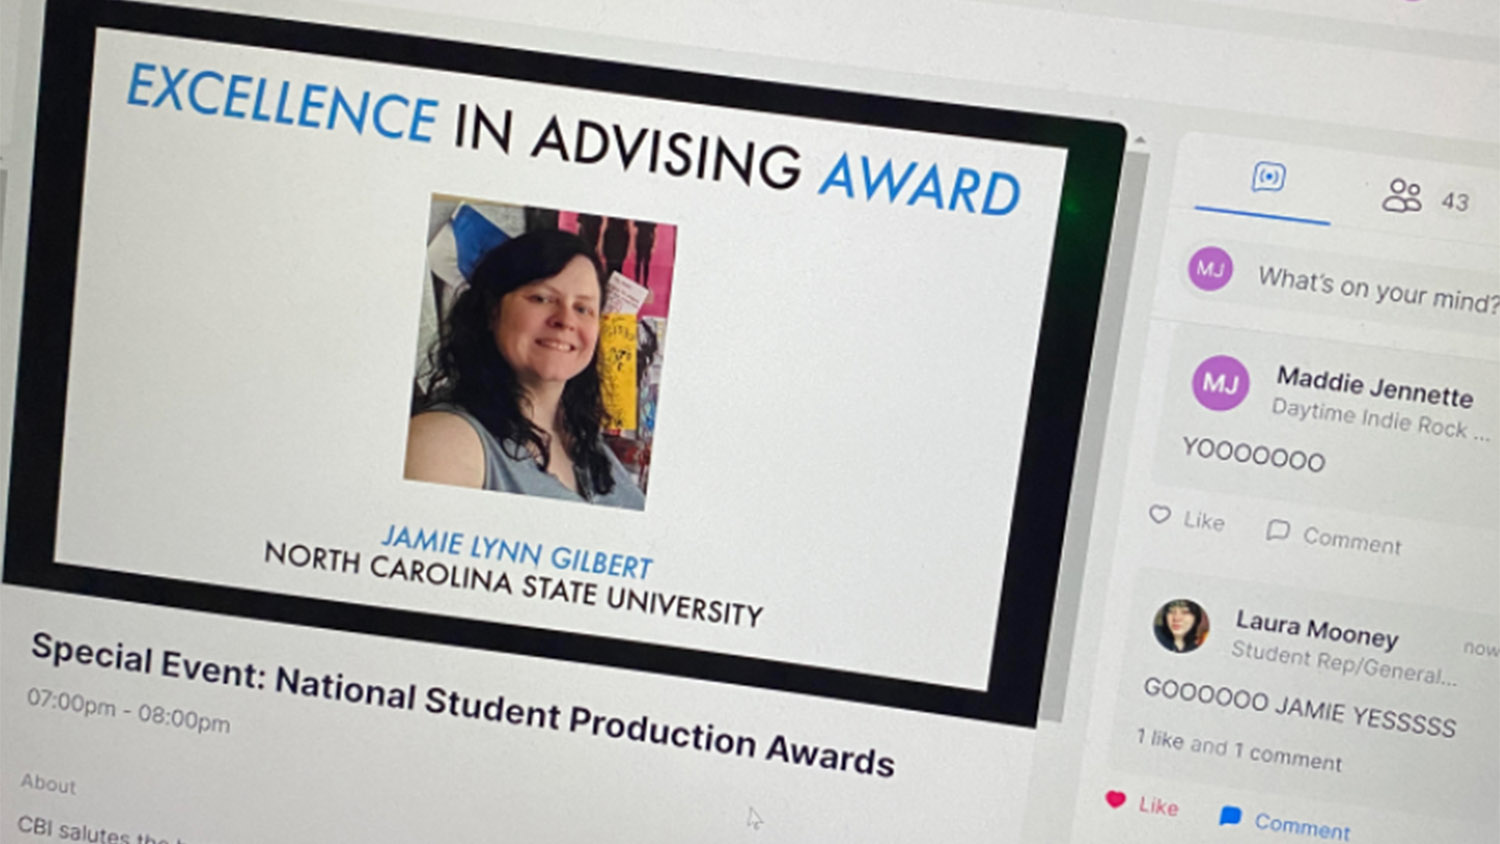 A screen shot showing Jamie Lynn Gilbert as the winner of the Excellence in Advising Award from CBI